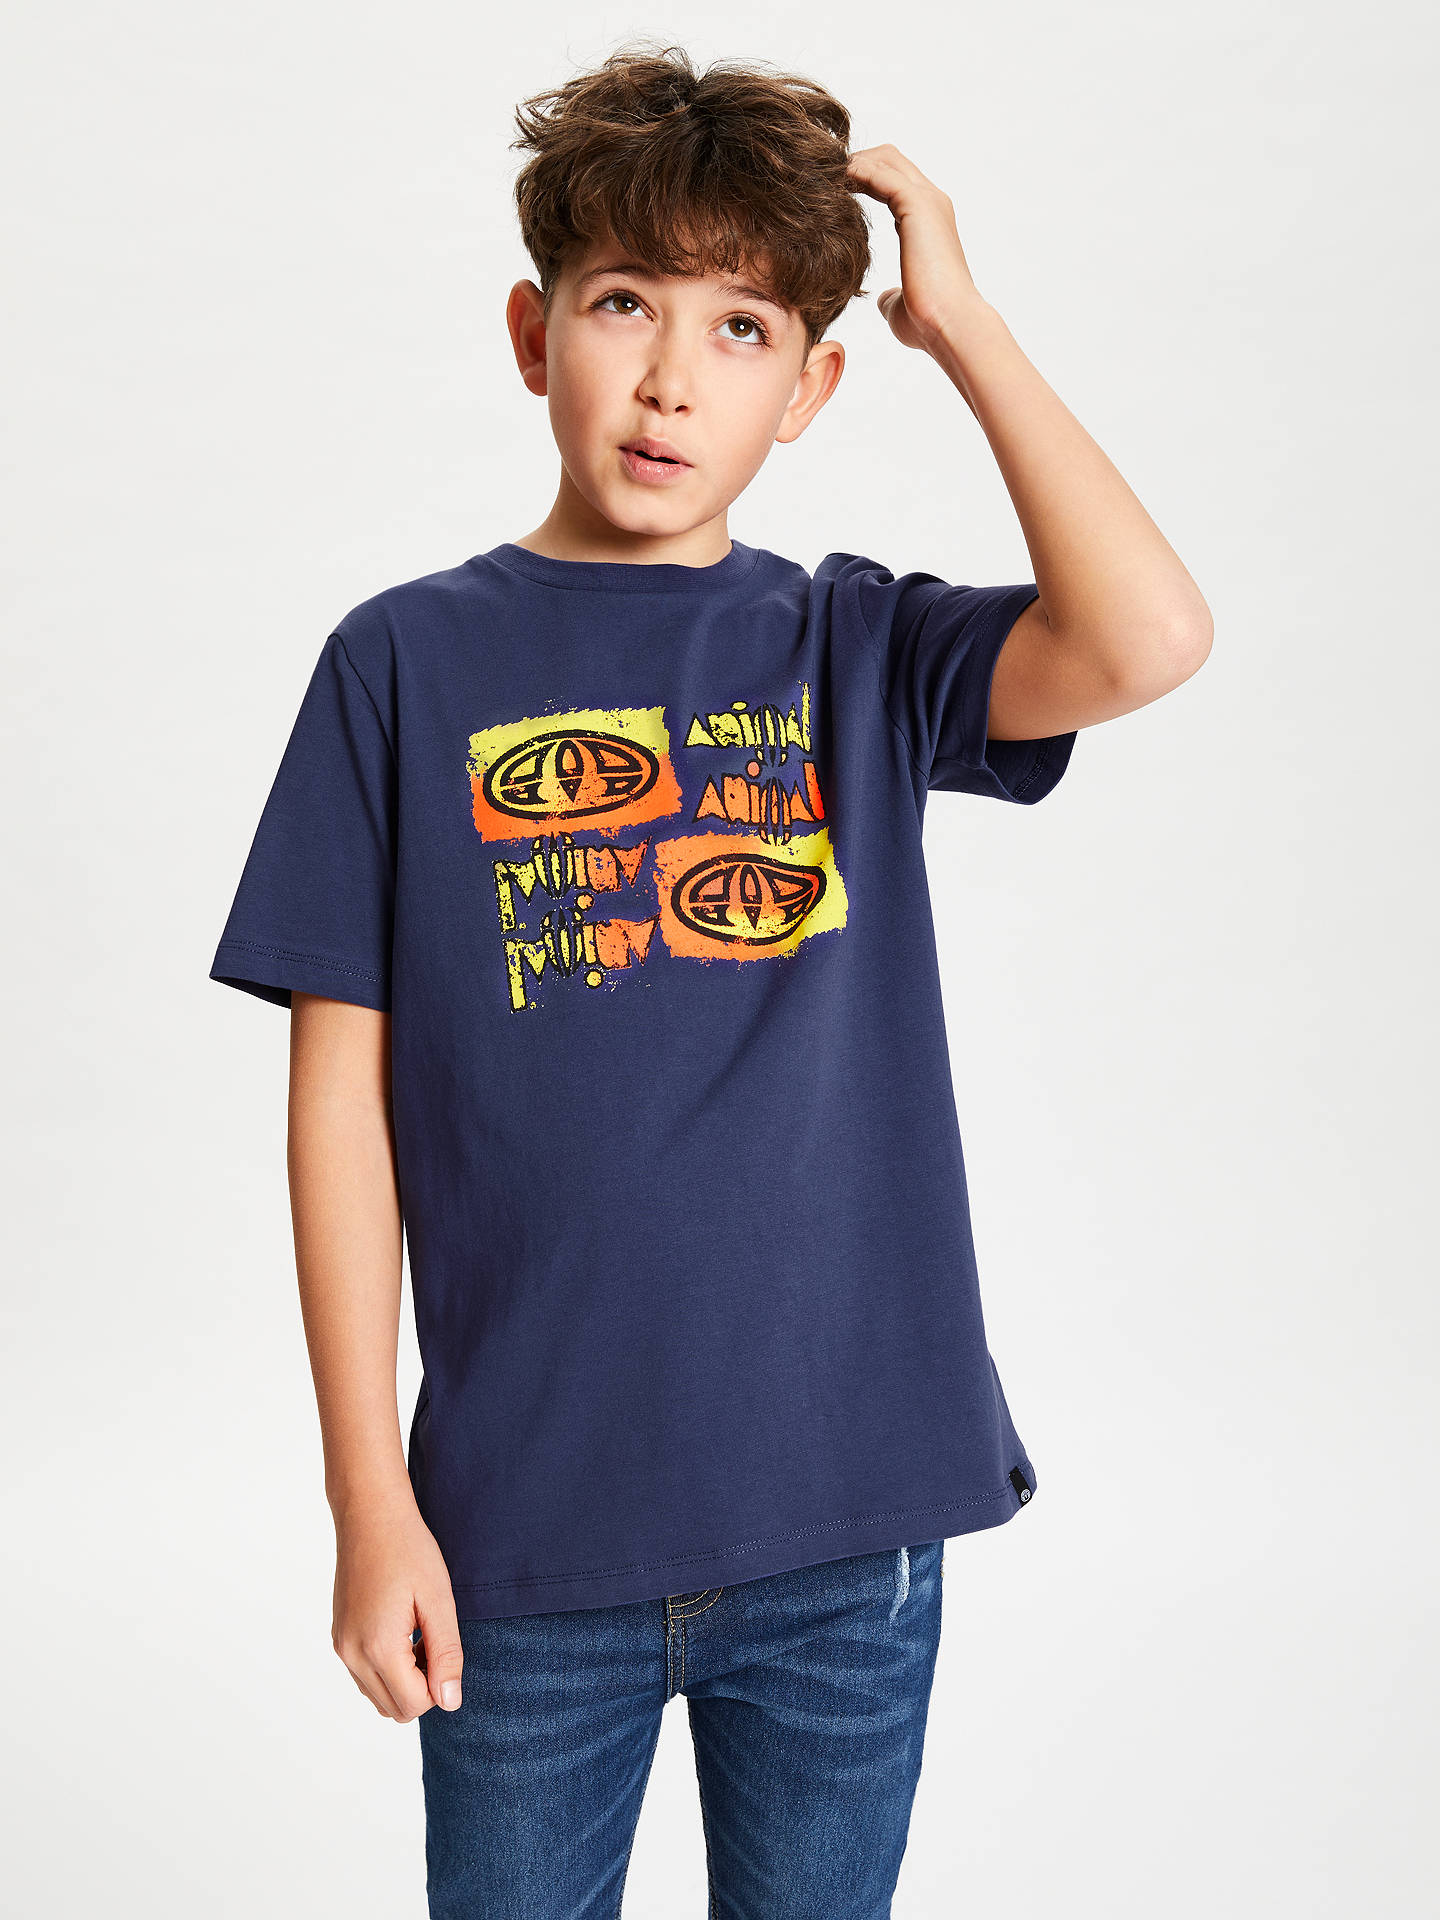 f0f1f641ed31 Buy Animal Boys' Printed T-Shirt, Blue, 13-14 years Online ...